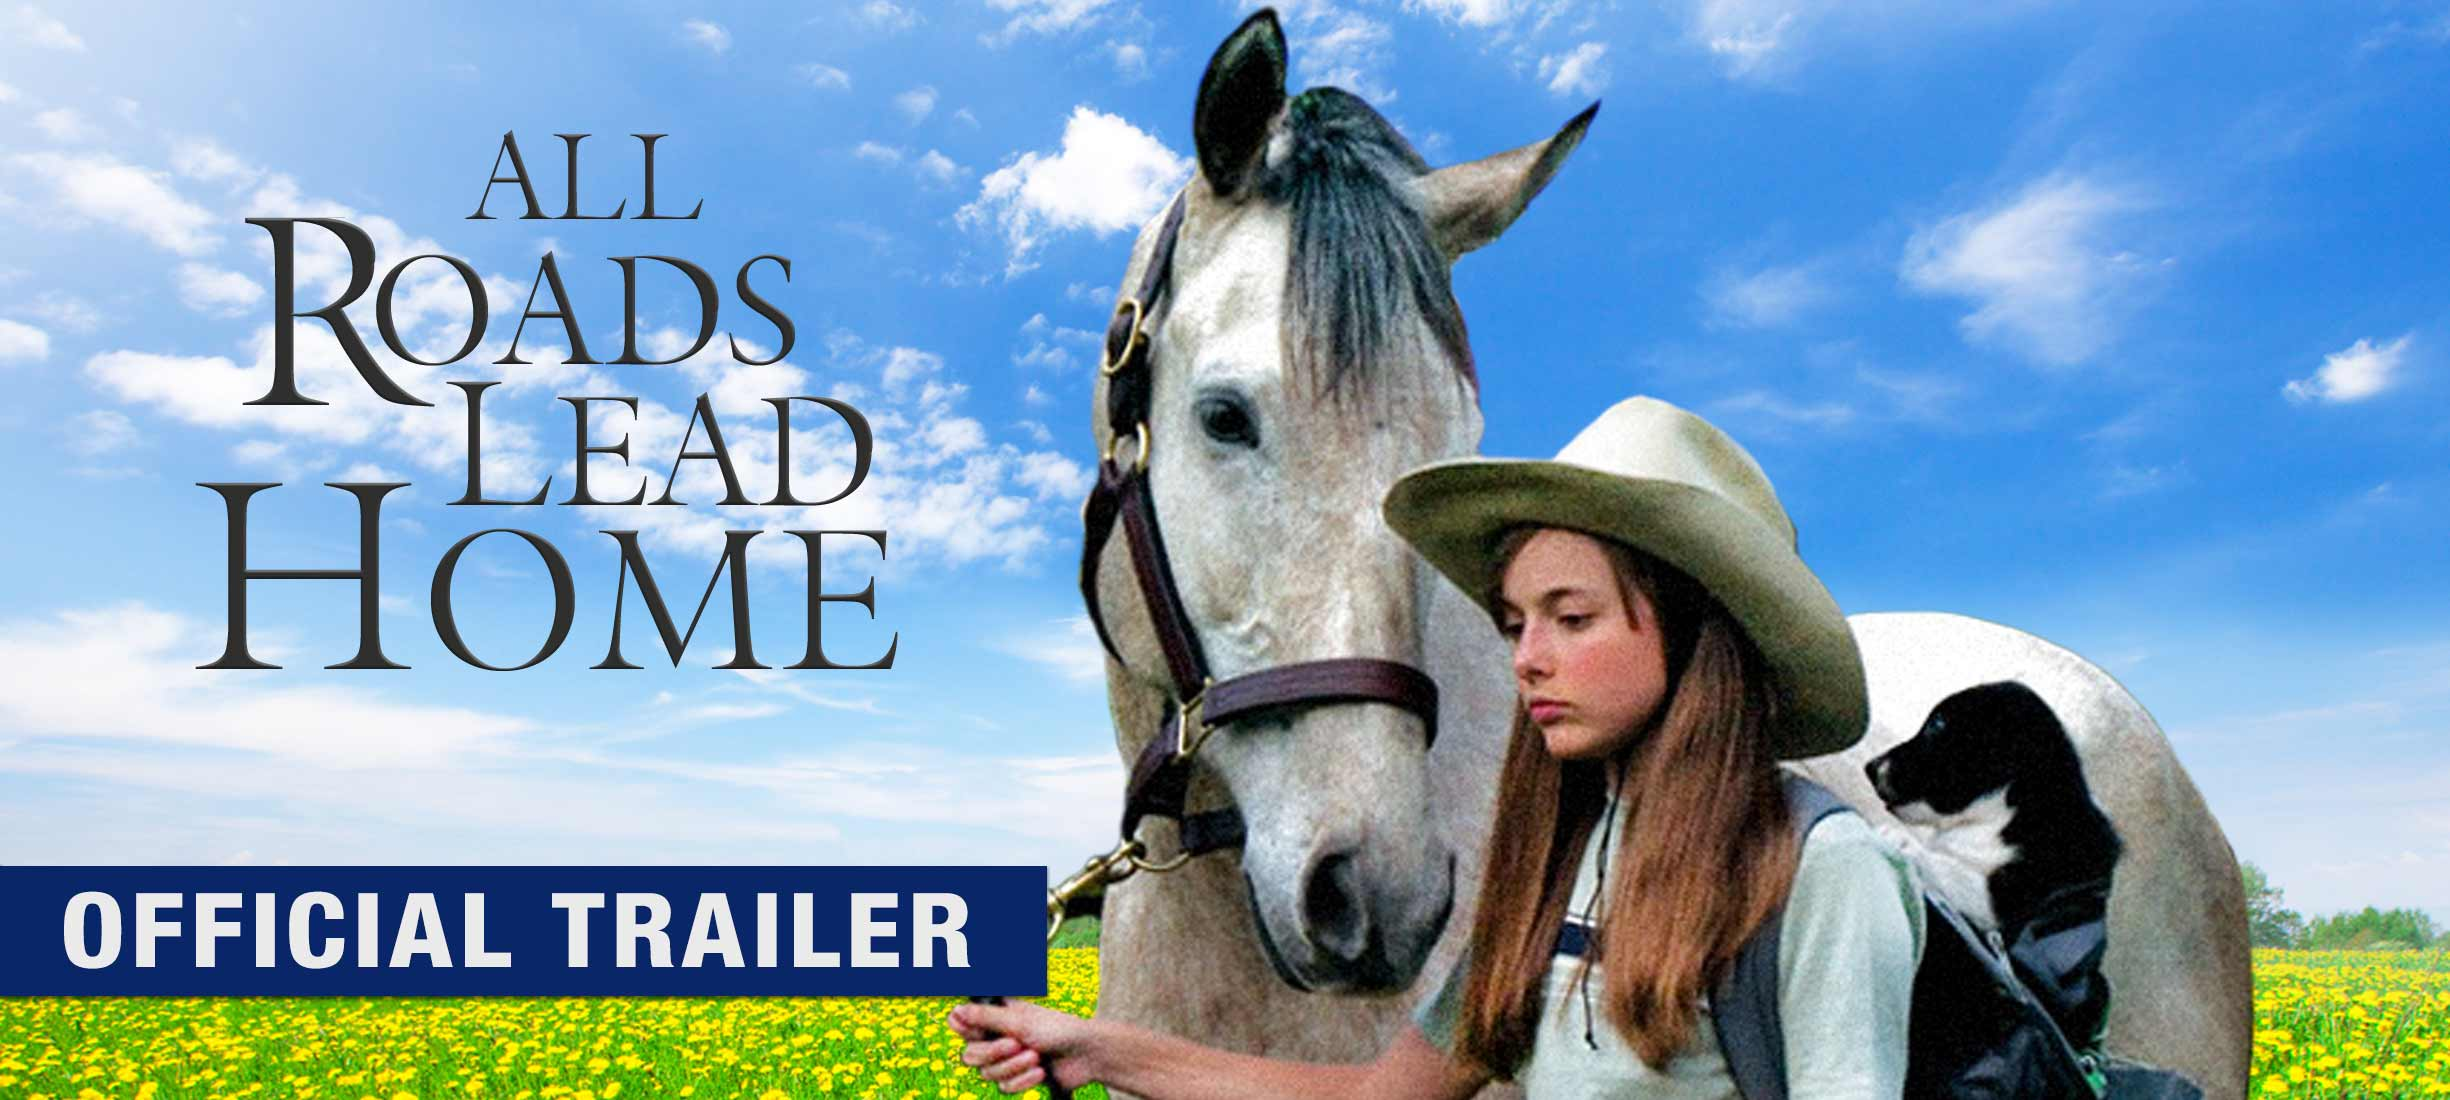 All Roads Lead Home: Trailer